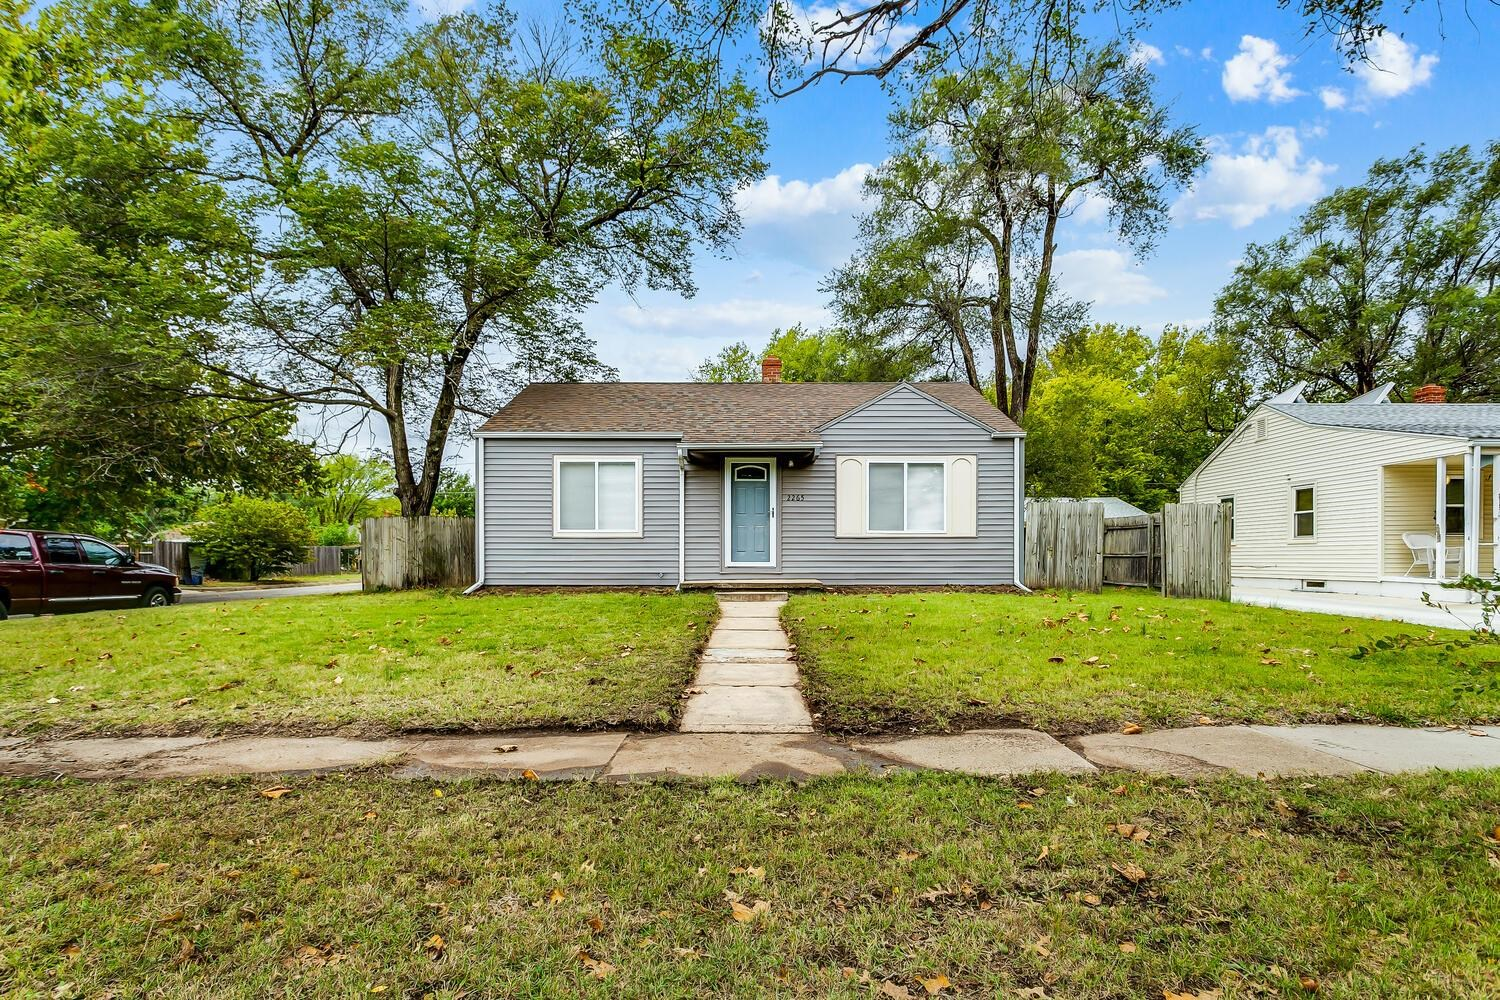 Come home to this newly remodeled, quaint home in southwest Wichita. This home on a corner lot has b